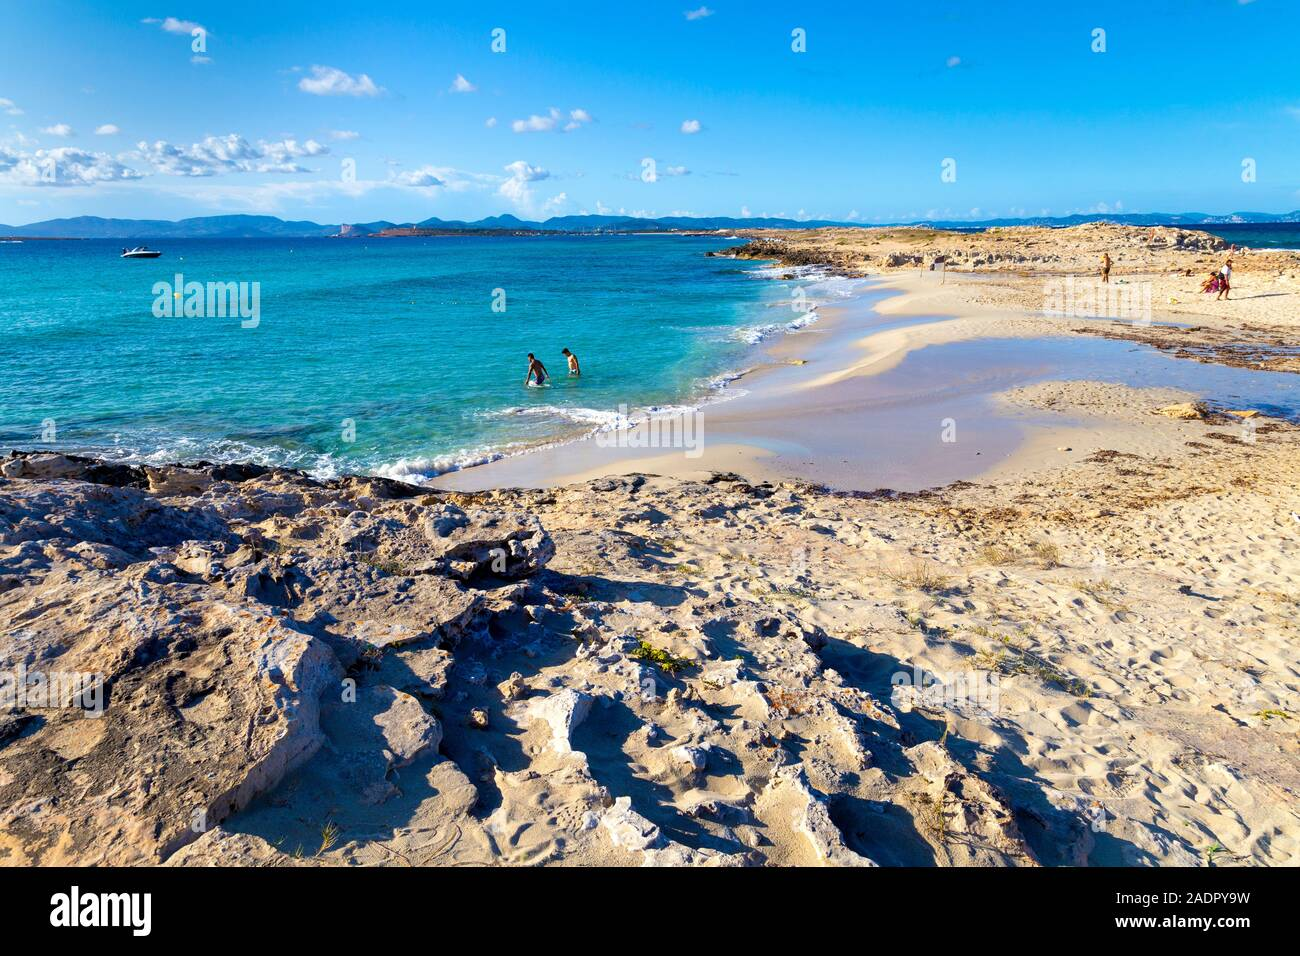 Platja de les Illetes, Formentera, Spain Stock Photo